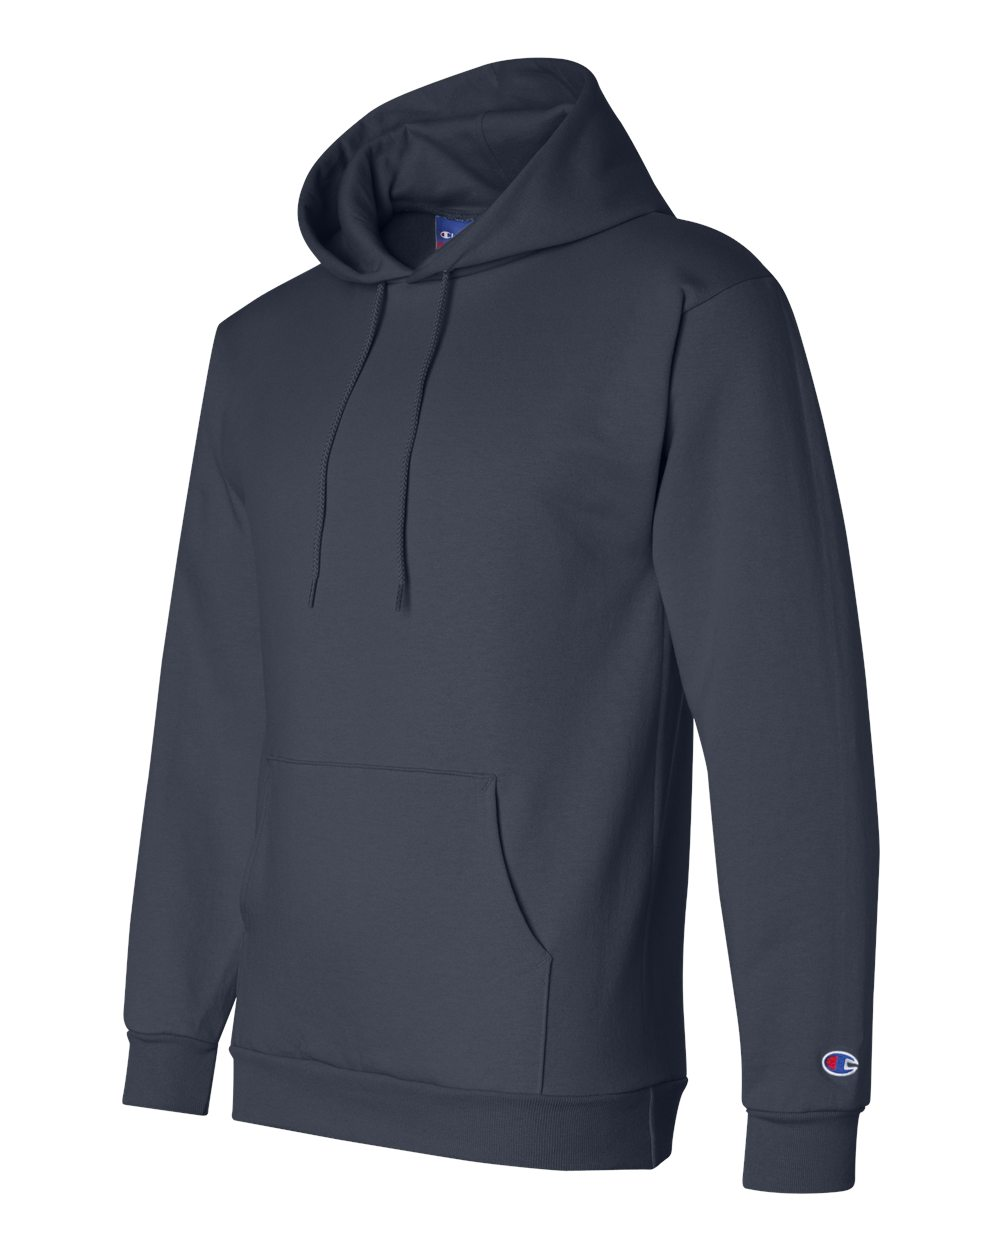 Champion-Mens-Double-Dry-Eco-Hooded-Sweatshirt-Hoodie-Pullover-S700-up-to-3XL miniature 26